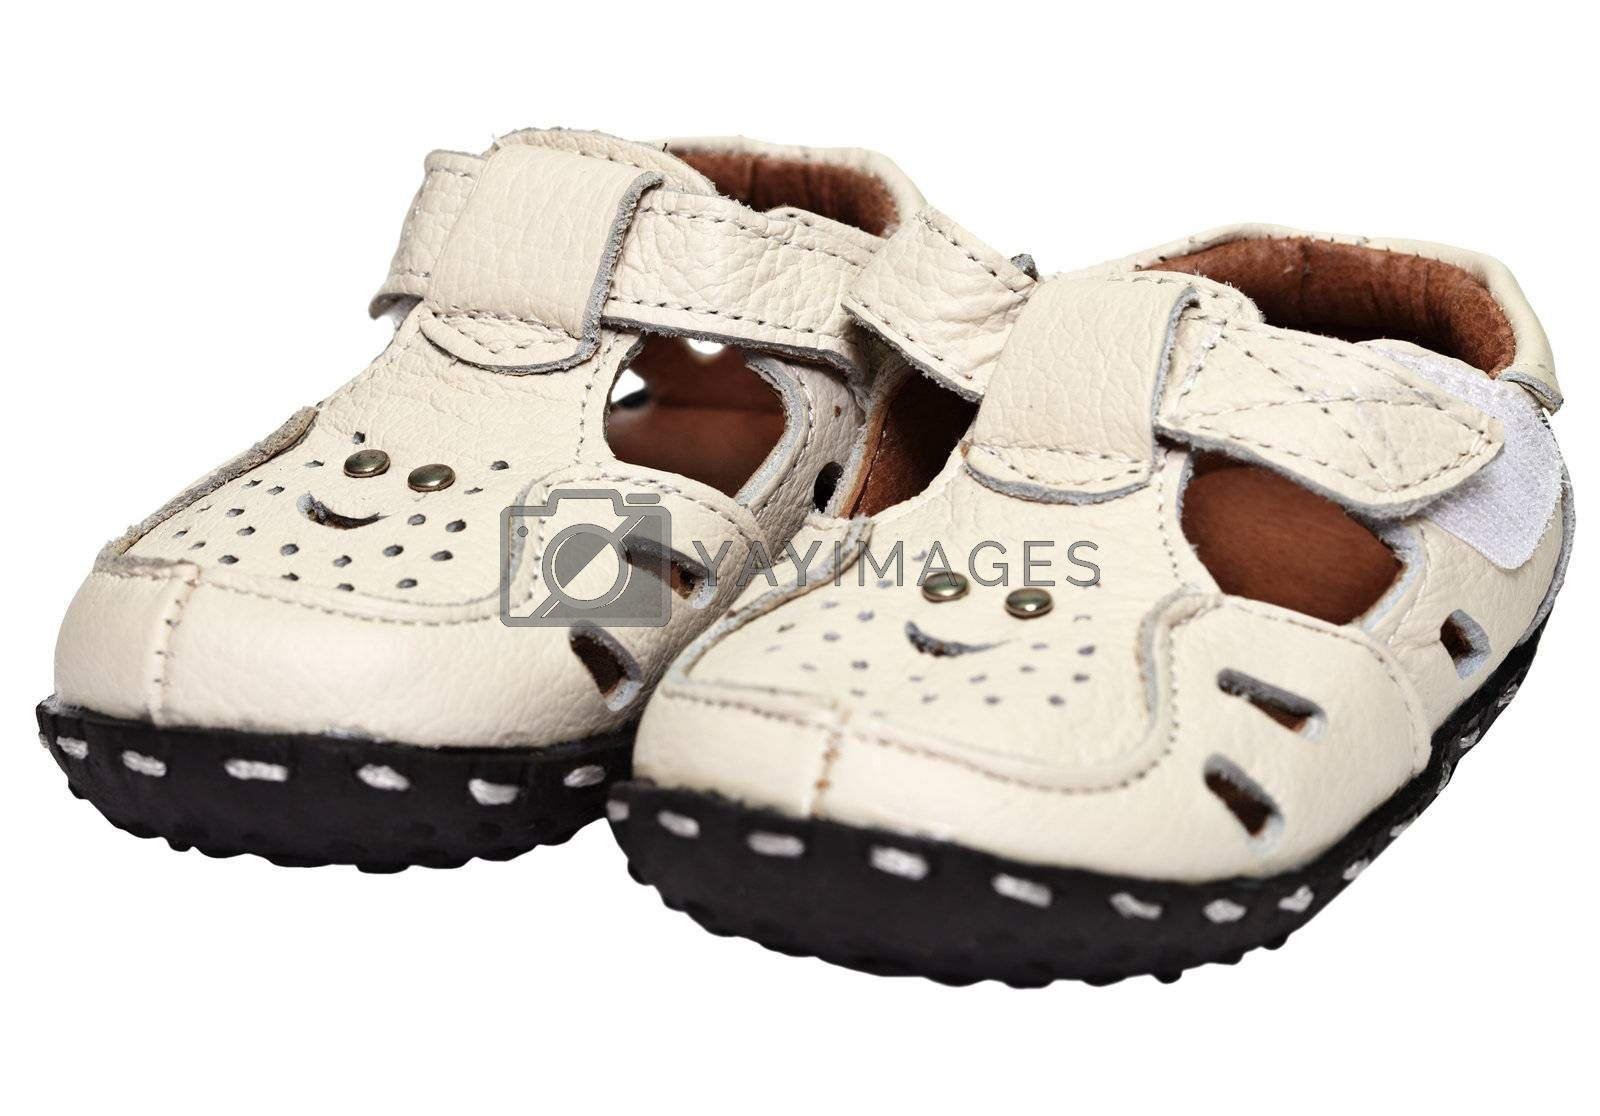 Kids sandals made of leather isolated on white background